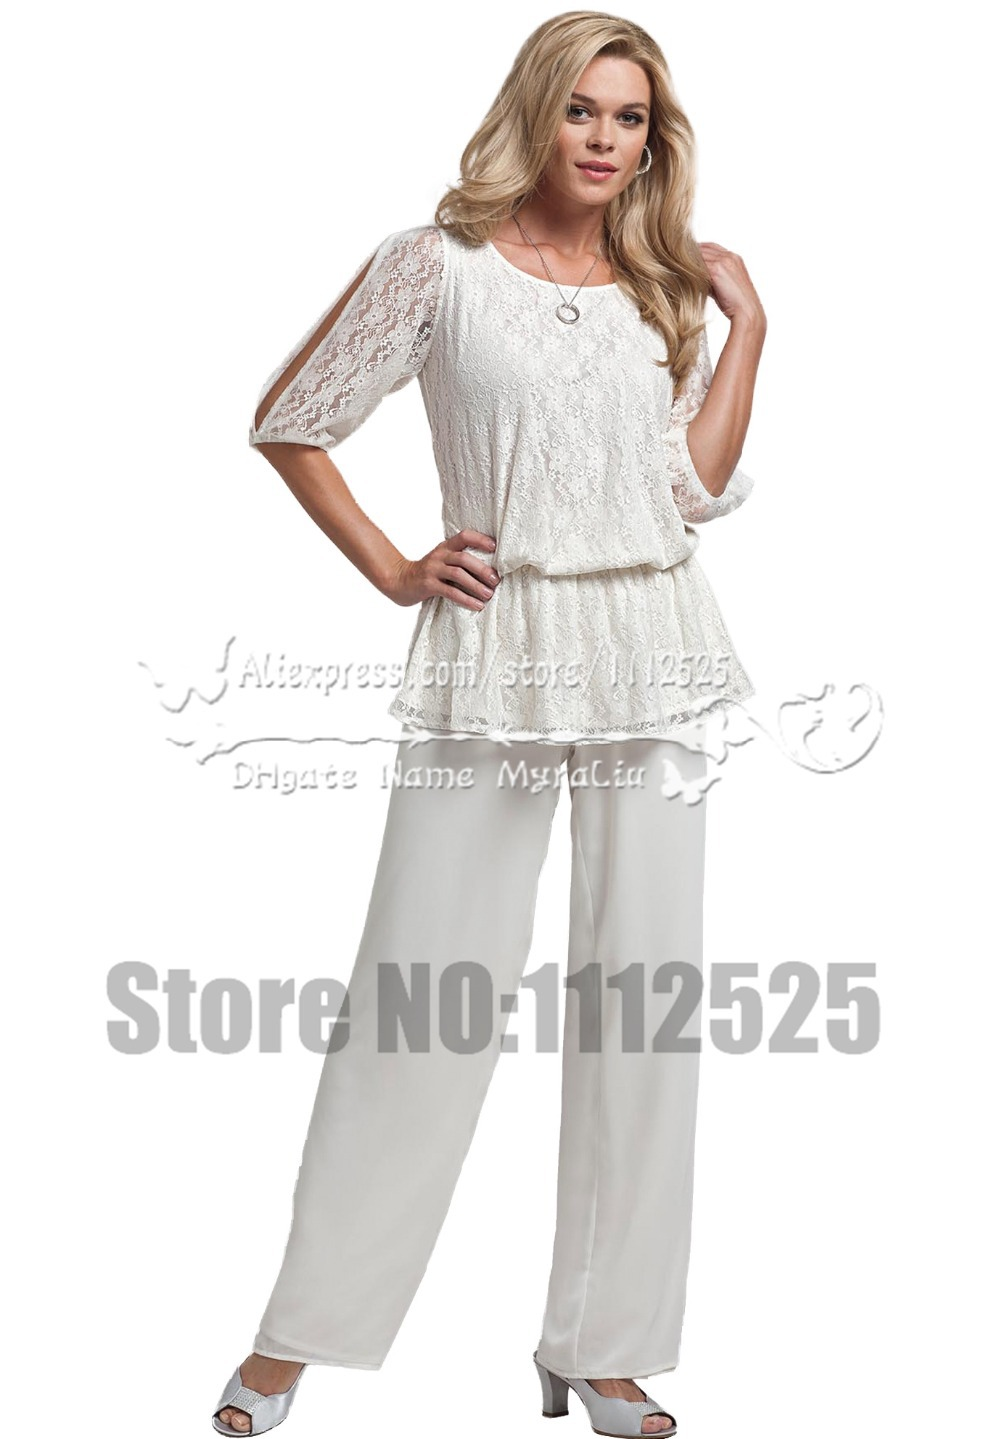 Buy amp1009 summer white two piece mother for Mother of the bride dresses summer wedding